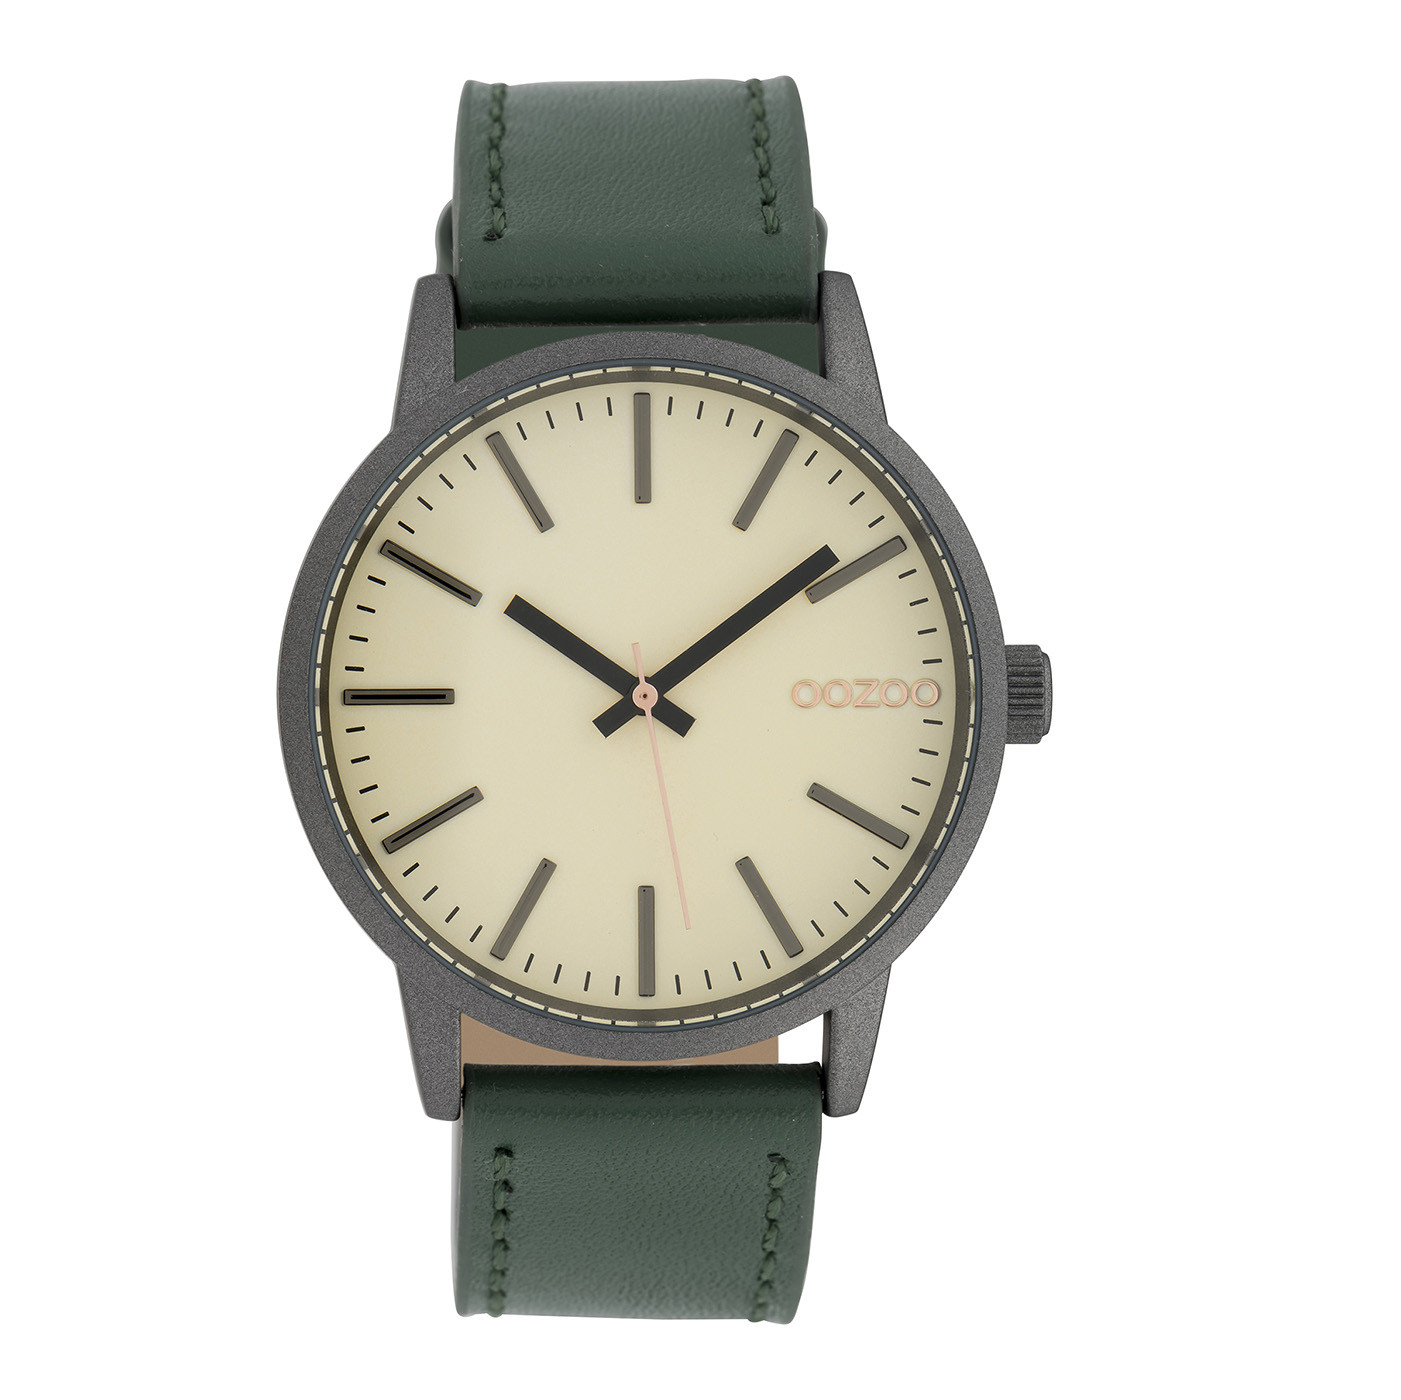 OOZOO Timepieces Groen/Cream horloge C10018 (40 mm)